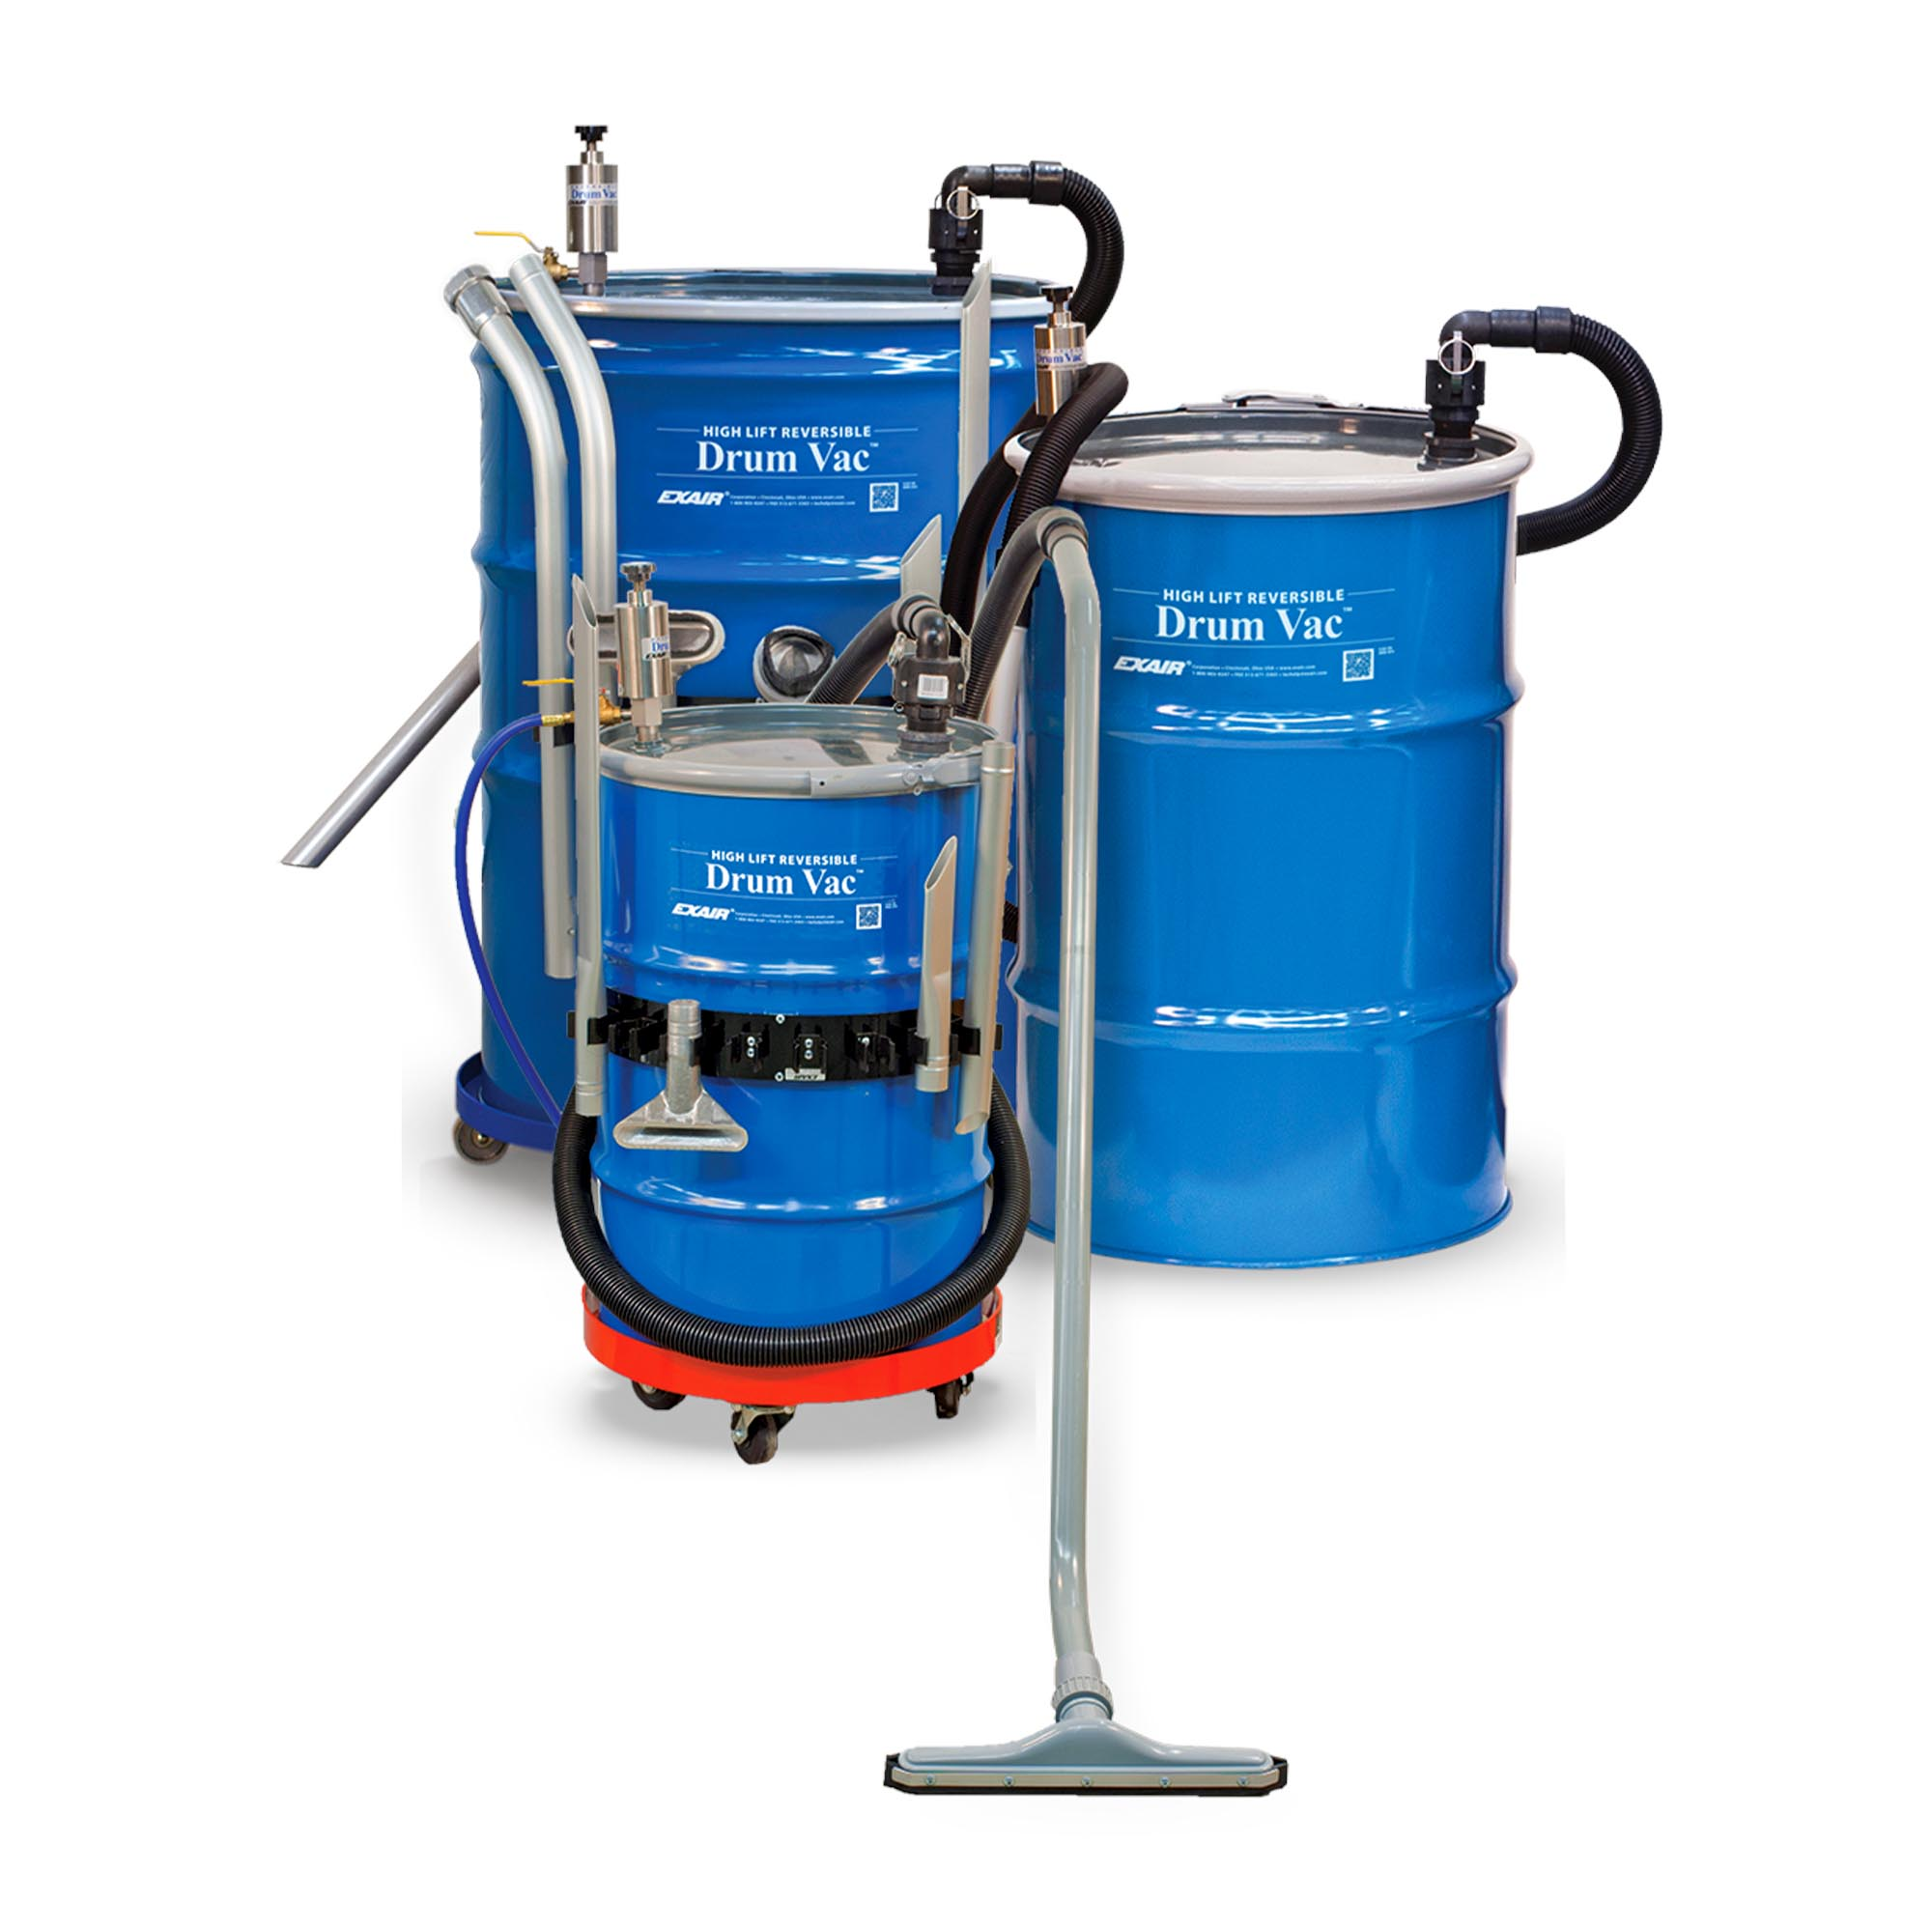 The High Lift Reversible Drum Vac family